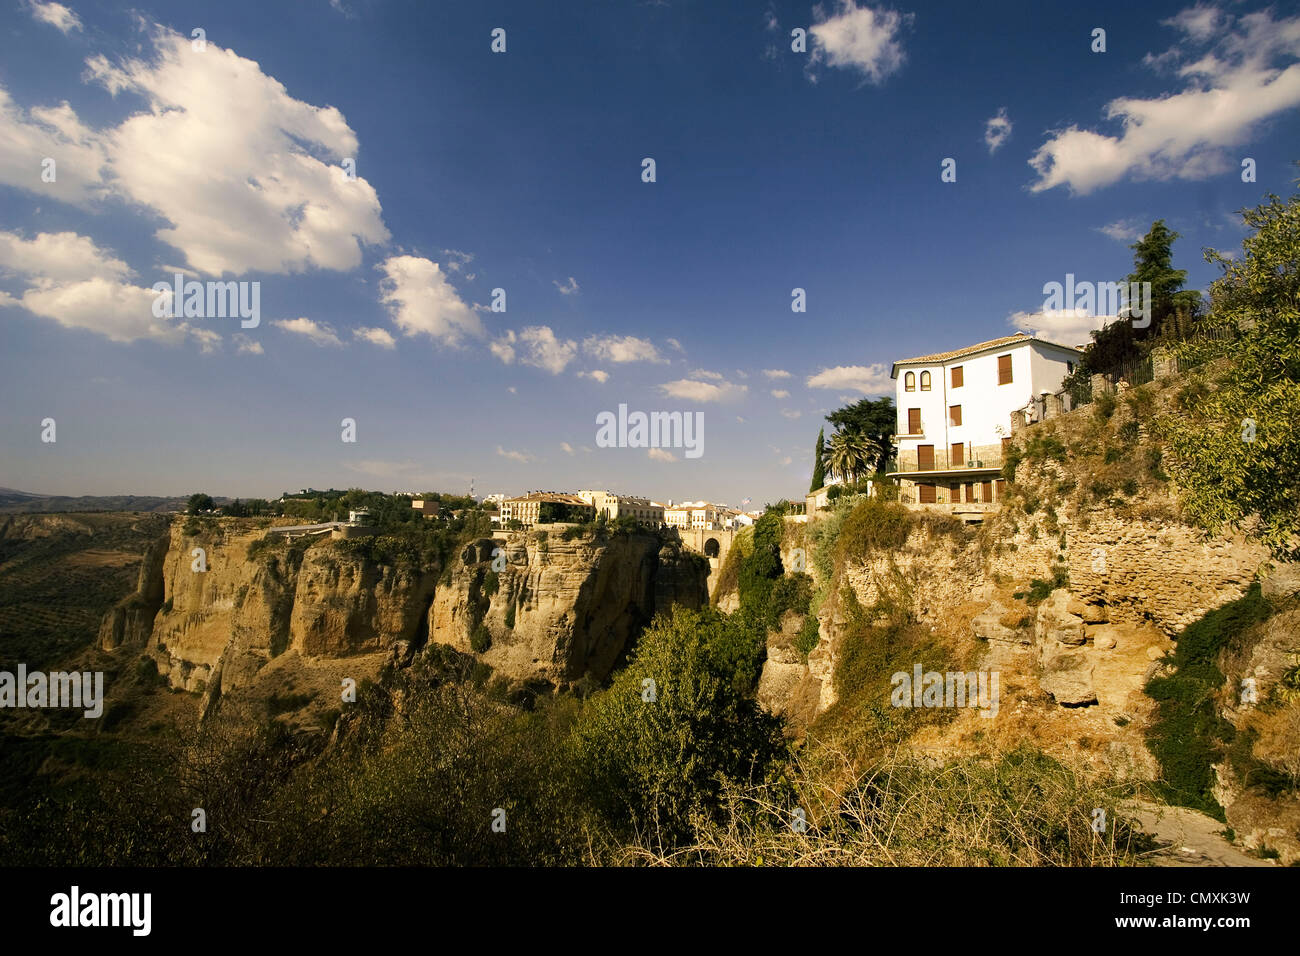 Spain Andalucia, Ronda, Puente Nuevo spanning the gorge of the Rio Guadalevin - Stock Image